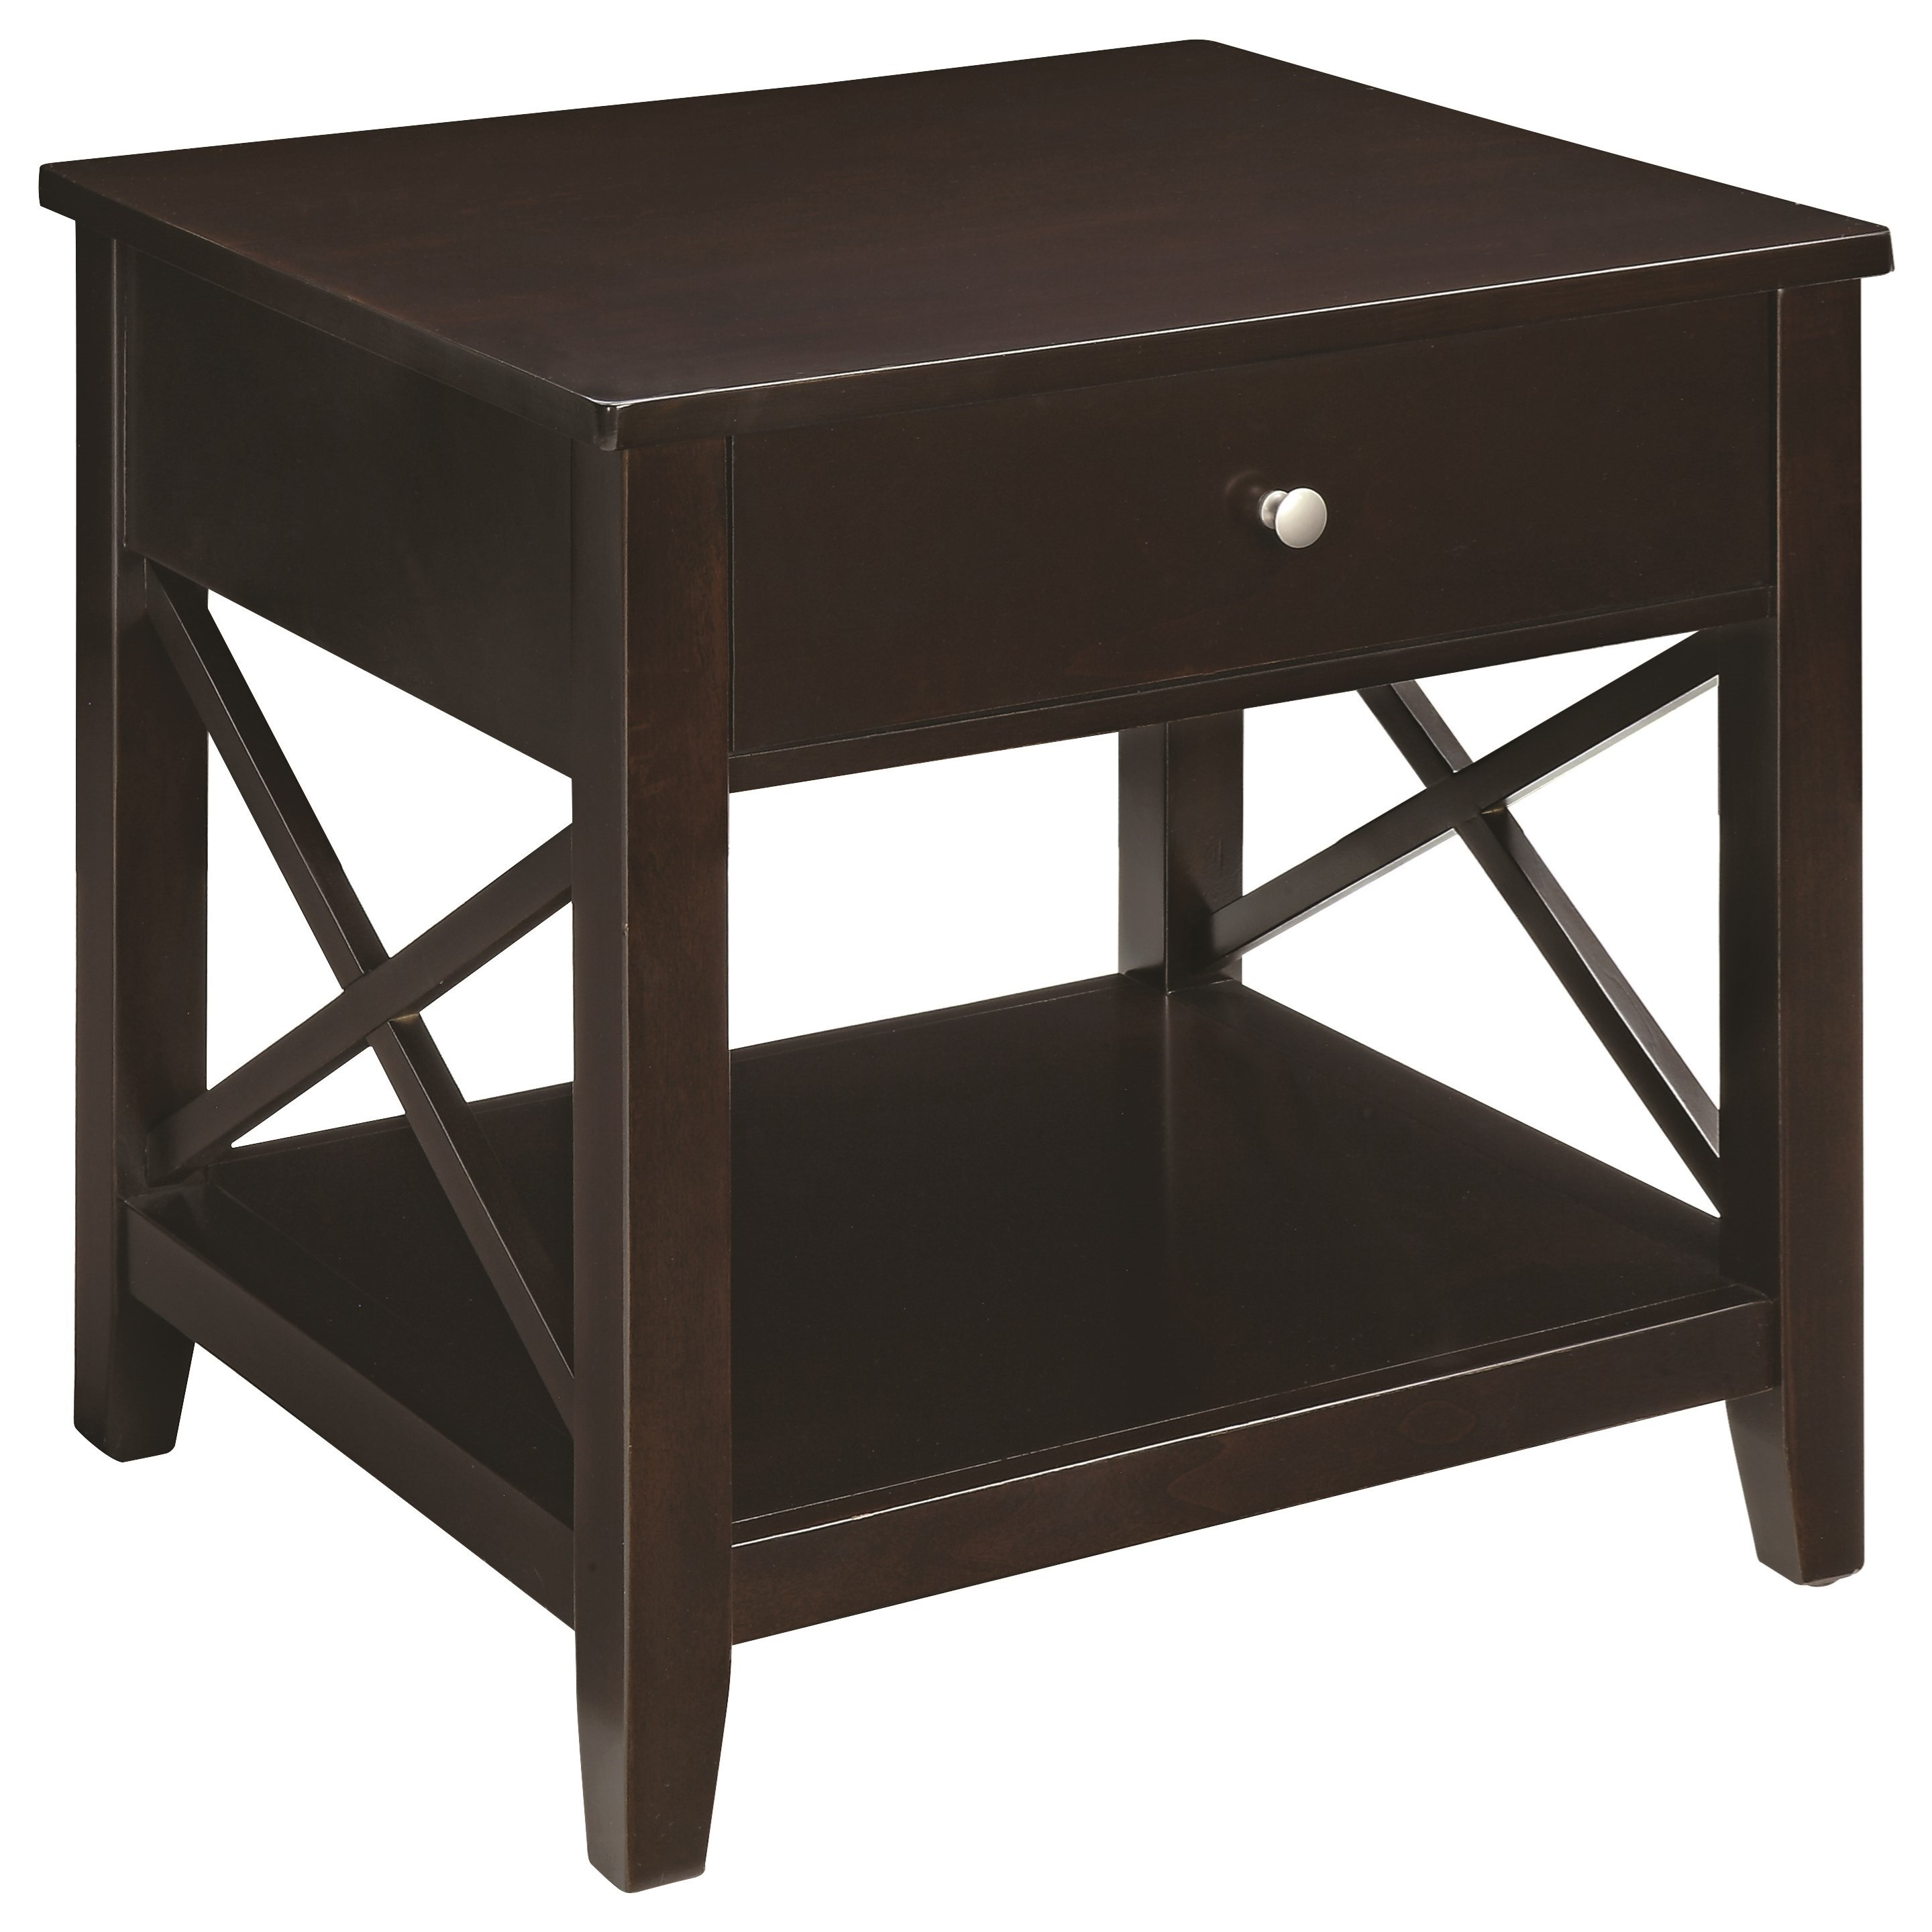 705687 transitional end table with x-supports